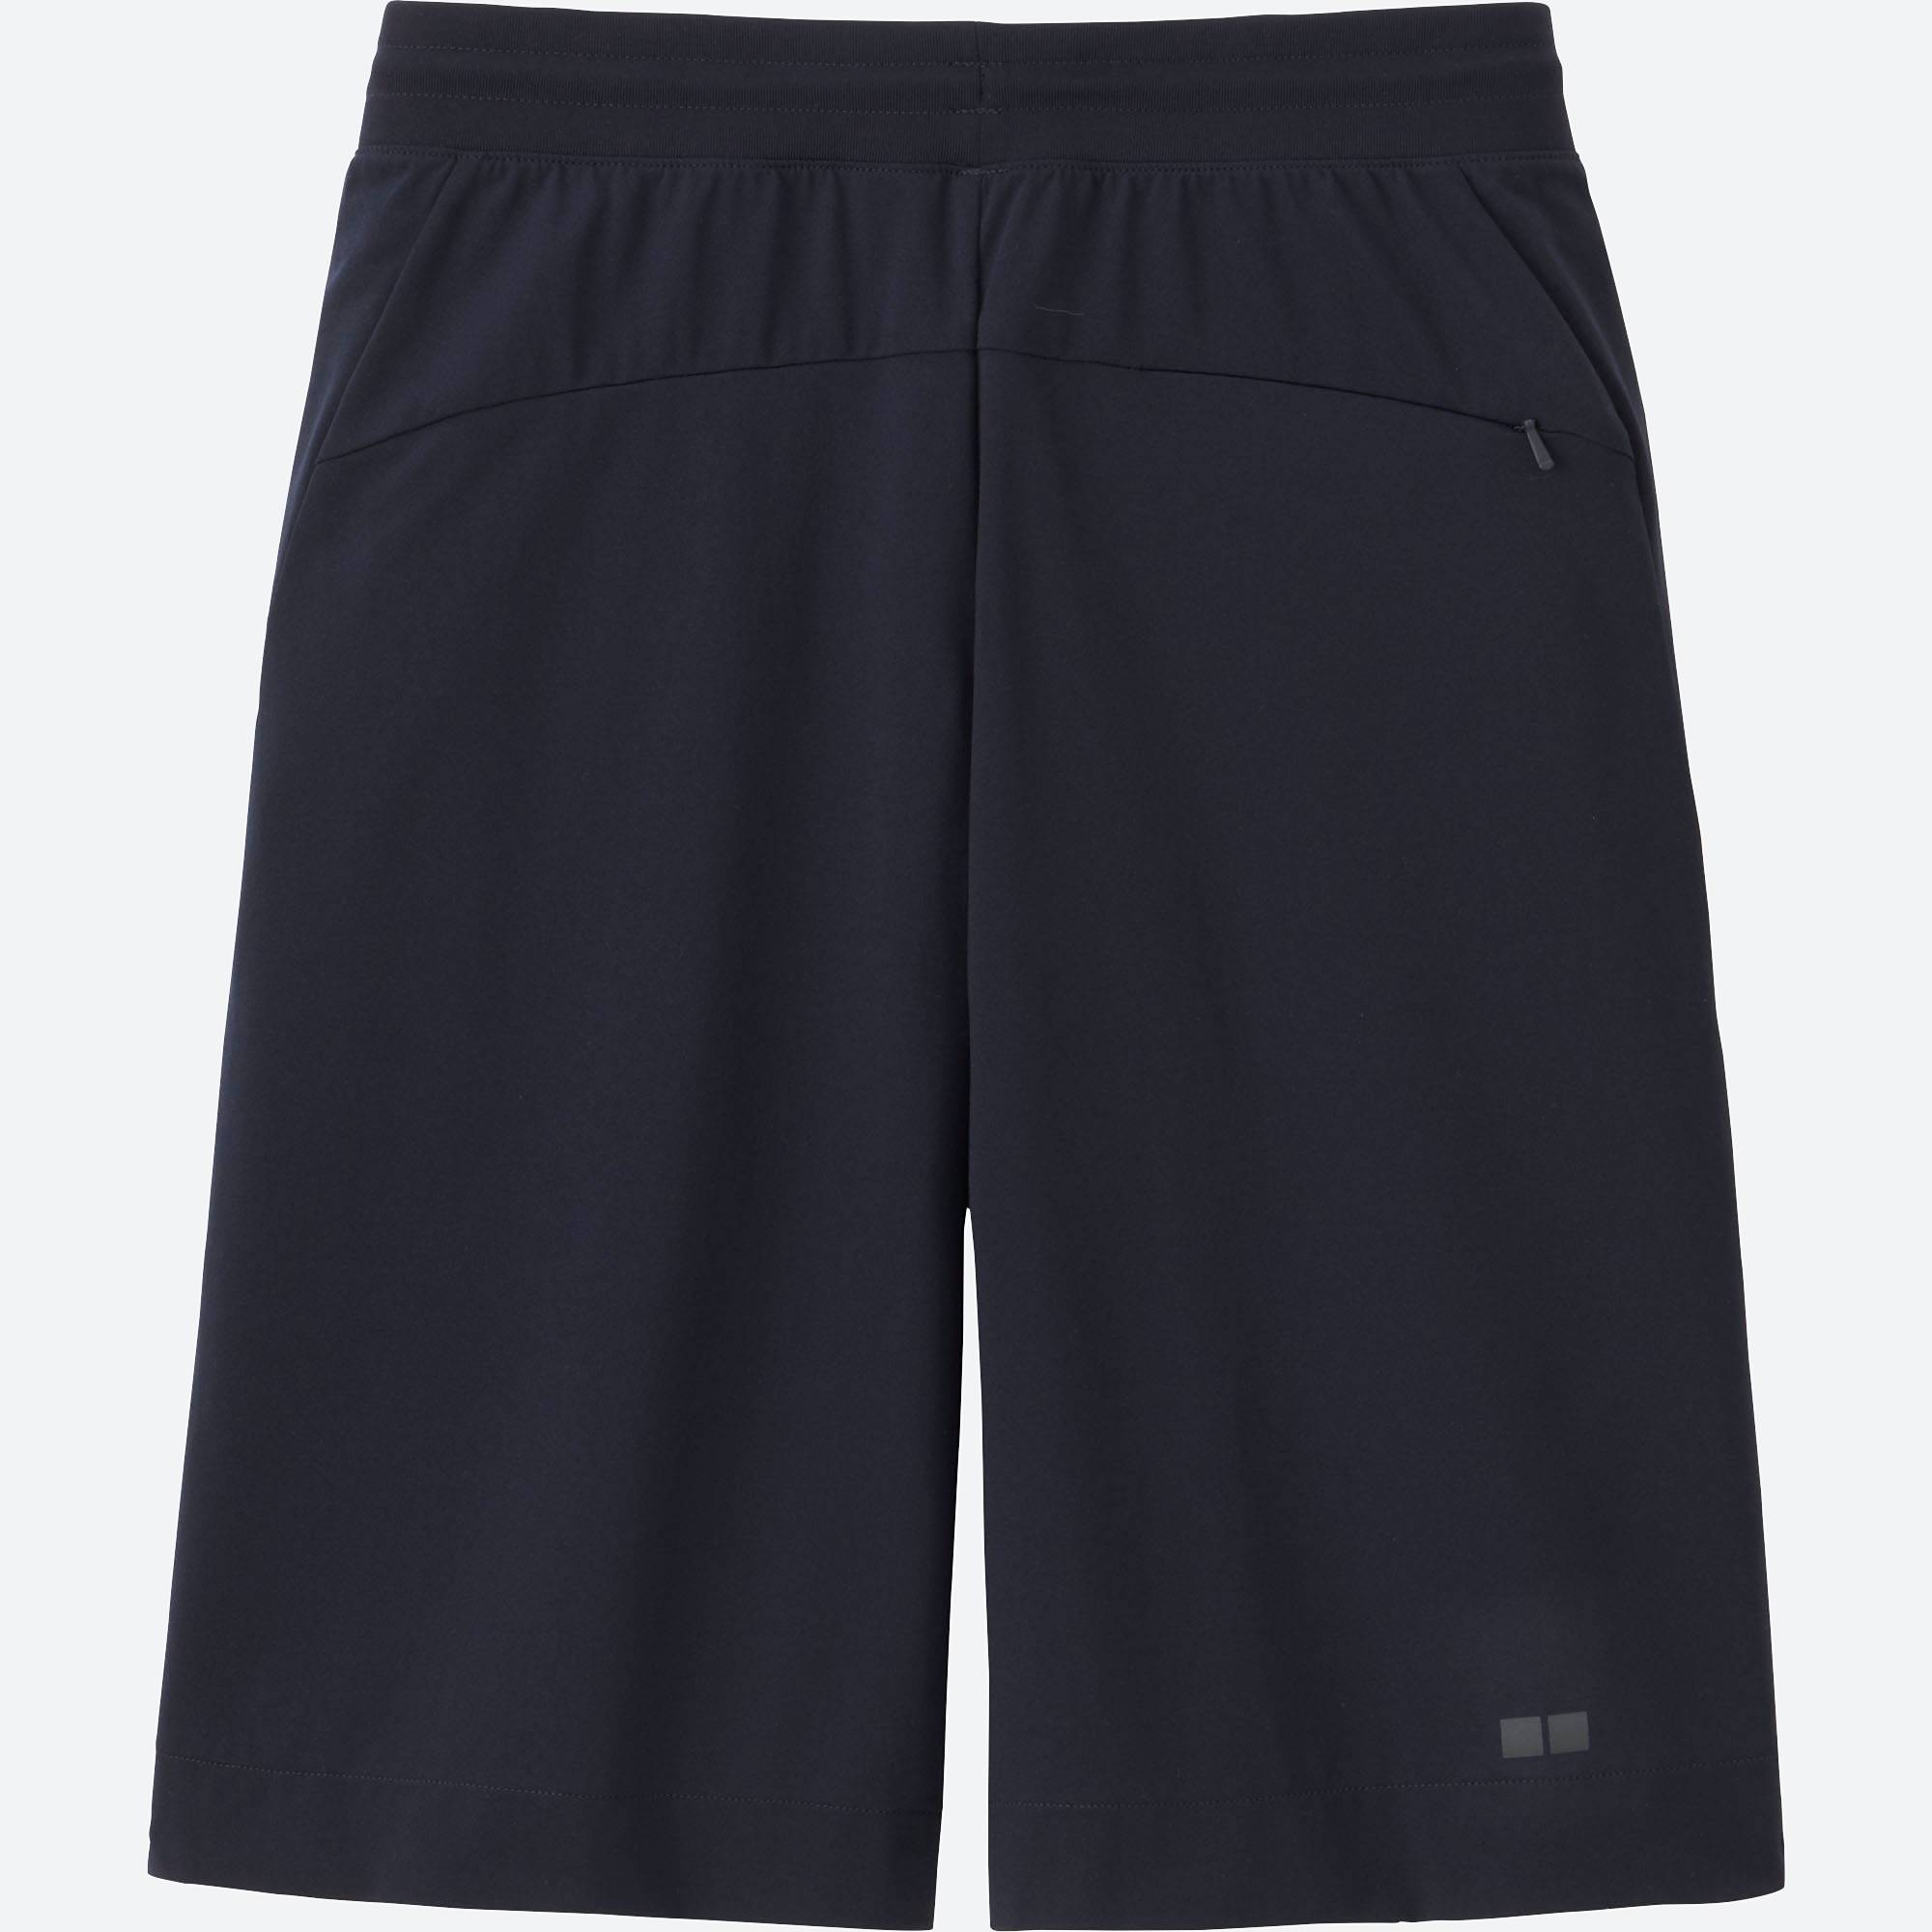 WOMEN DRY-EX ULTRA STRETCH KNEE LENGTH SHORTS | UNIQLO US